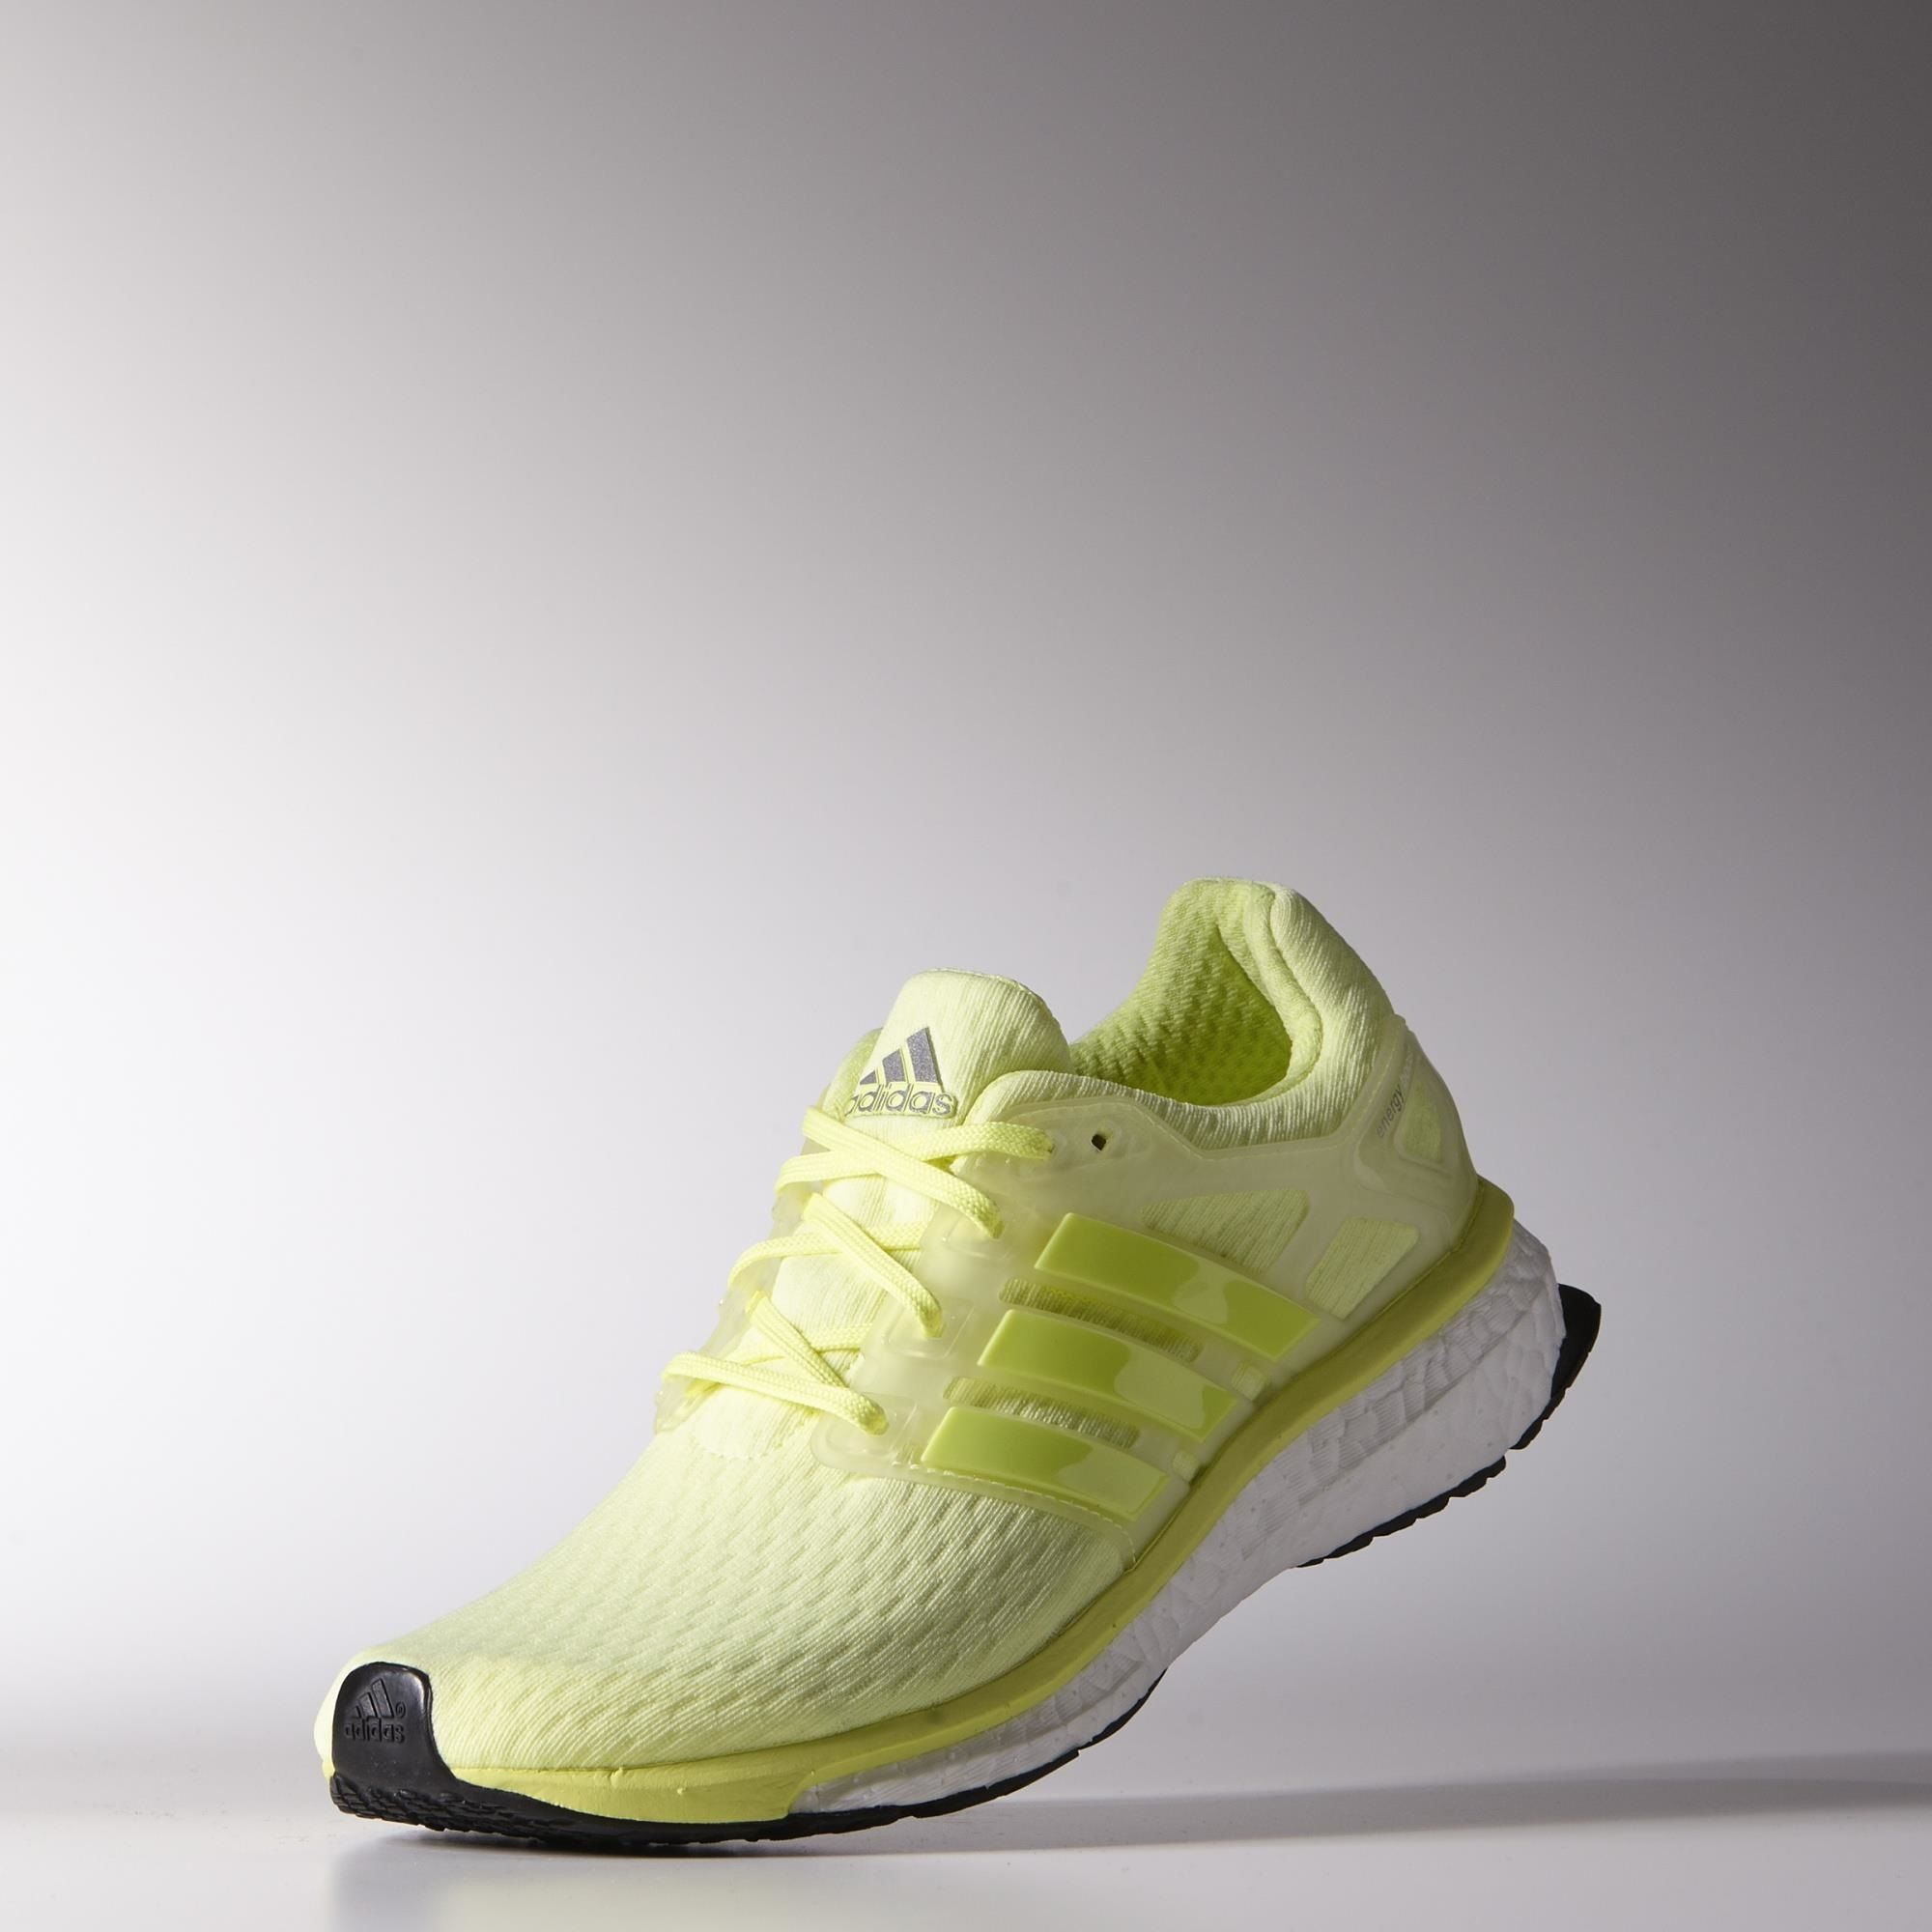 adidas - Energy Boost Reveal Shoes $140 FP. Yellow ...